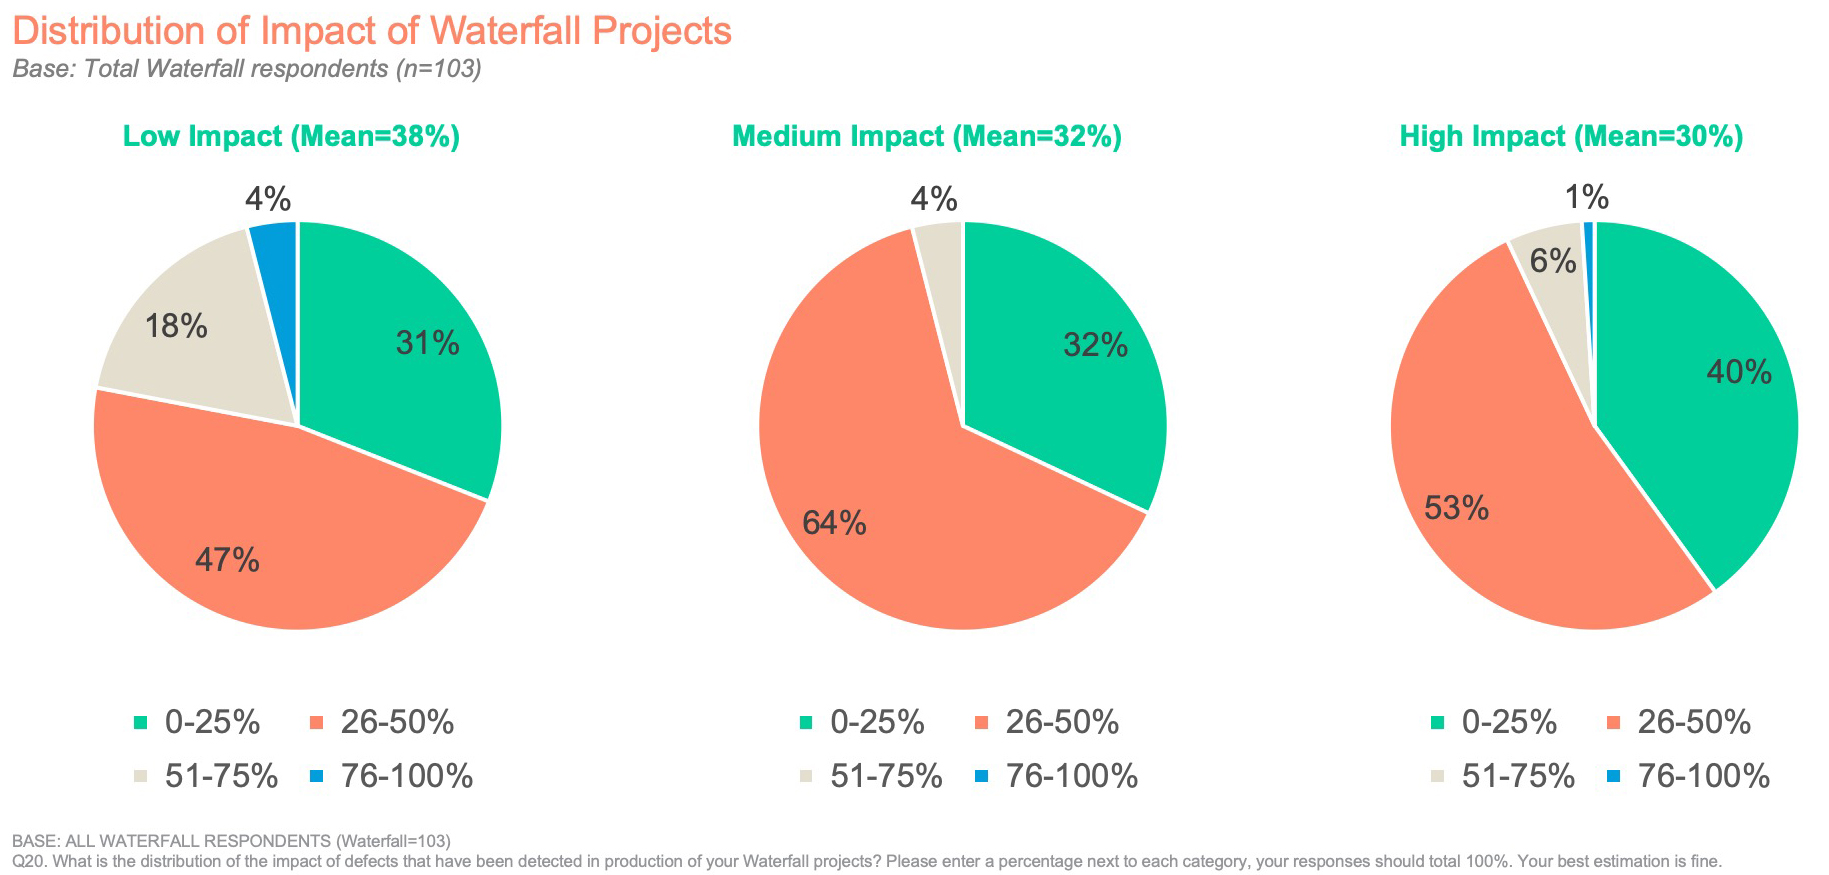 Distribution of Impact of Waterfall Projects